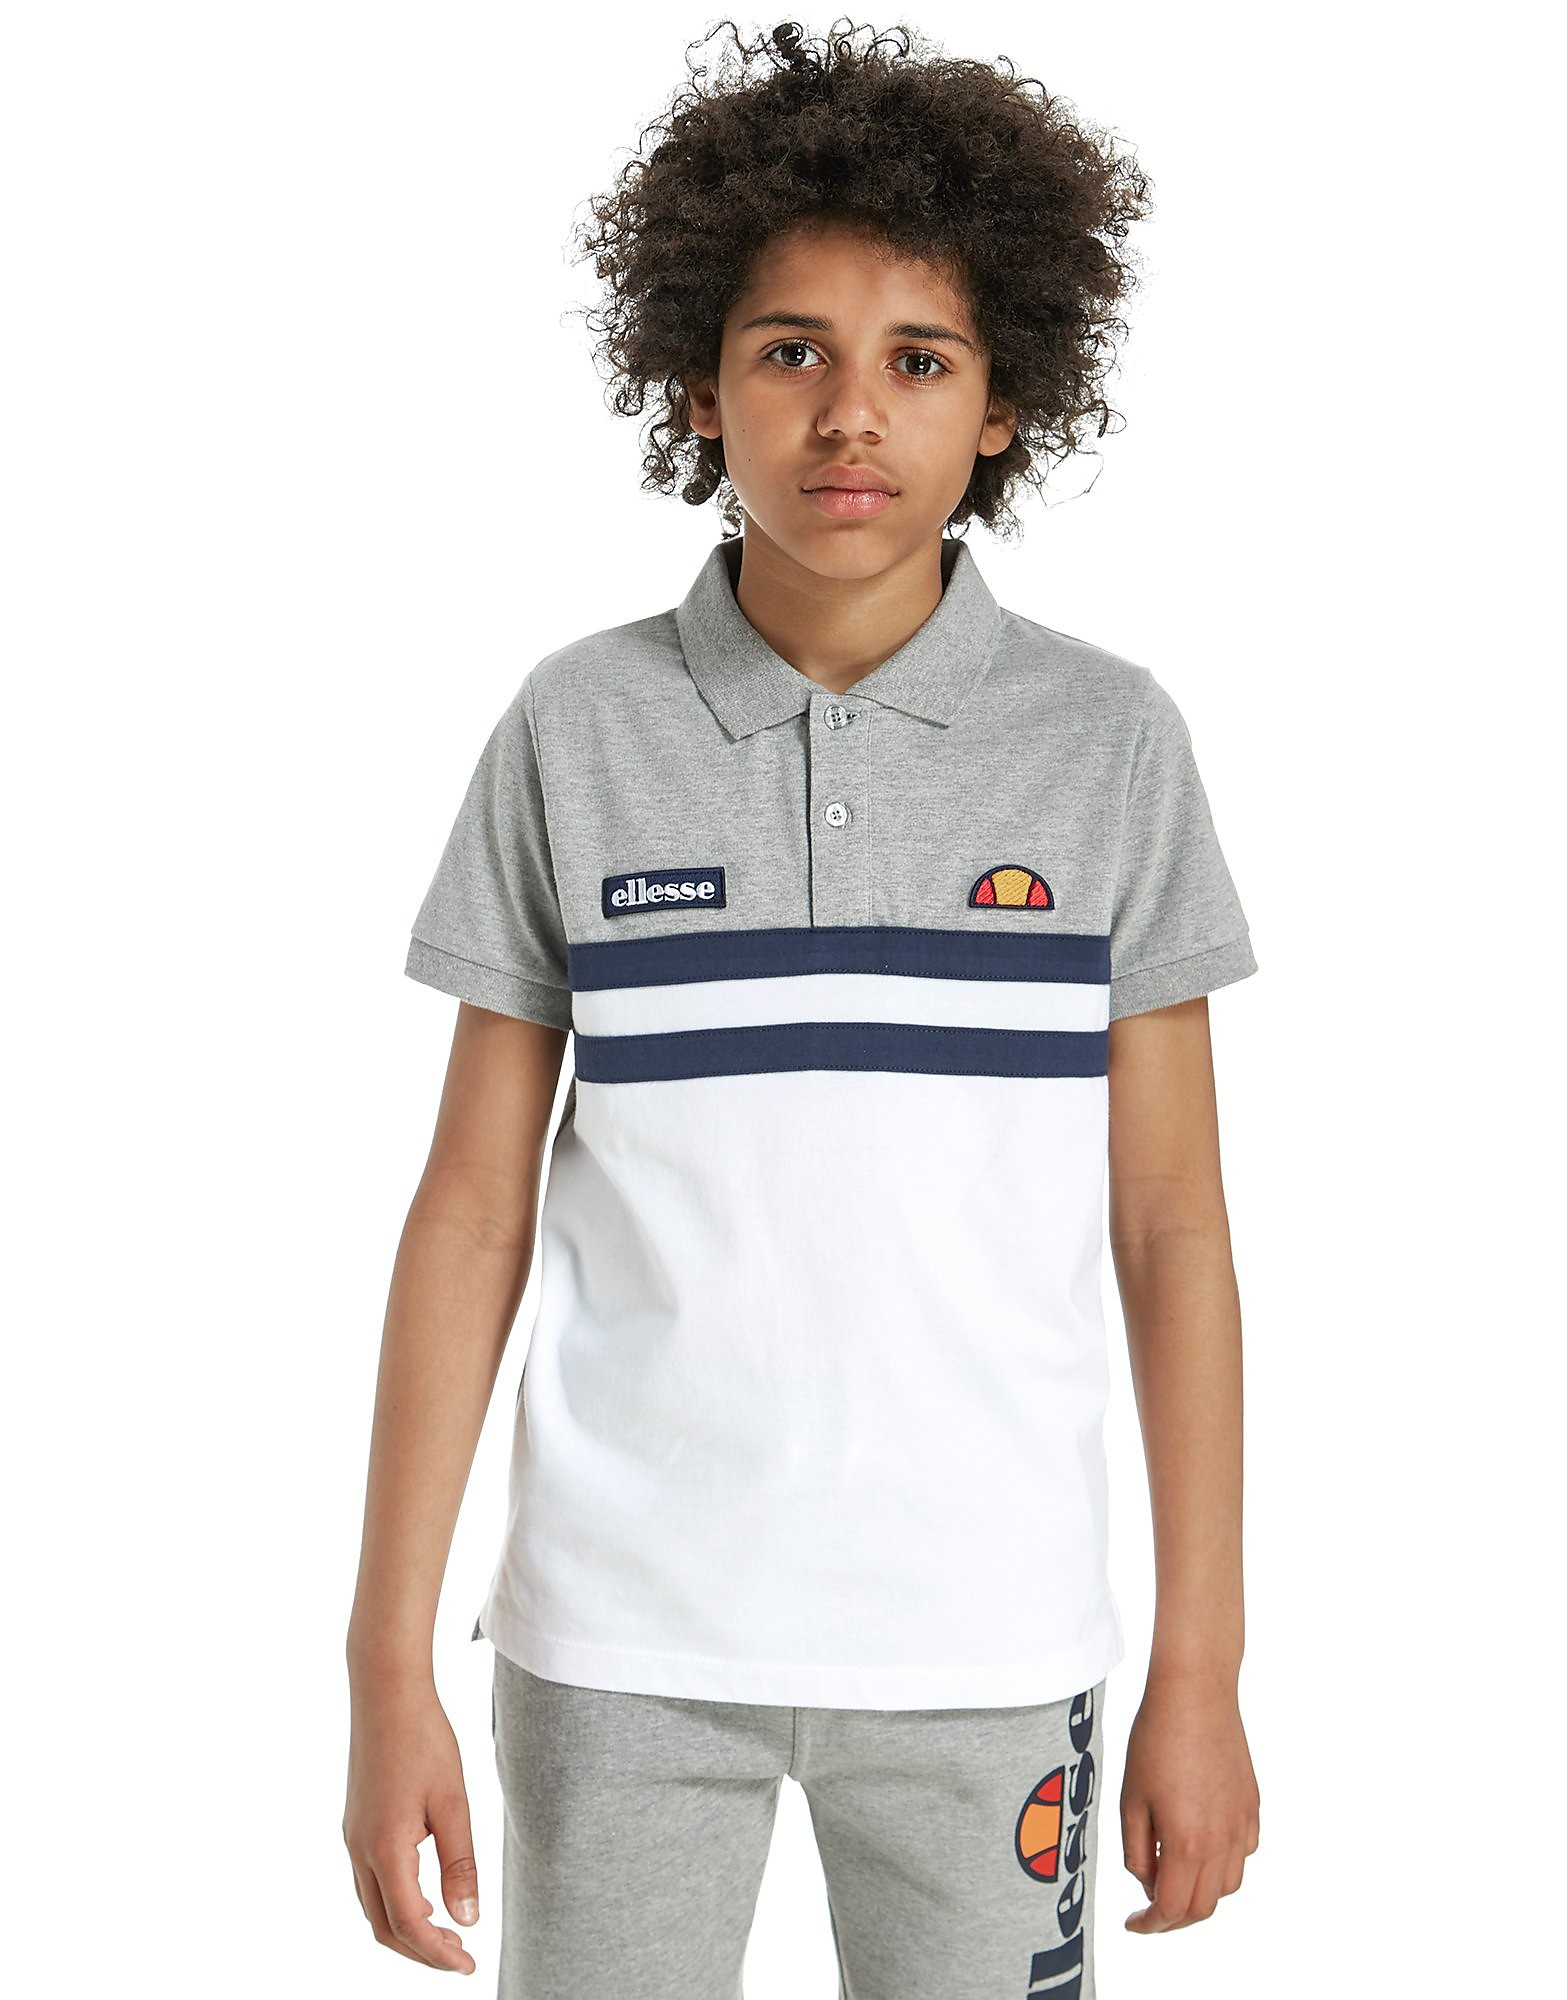 Ellesse Piovera Polo Shirt Junior